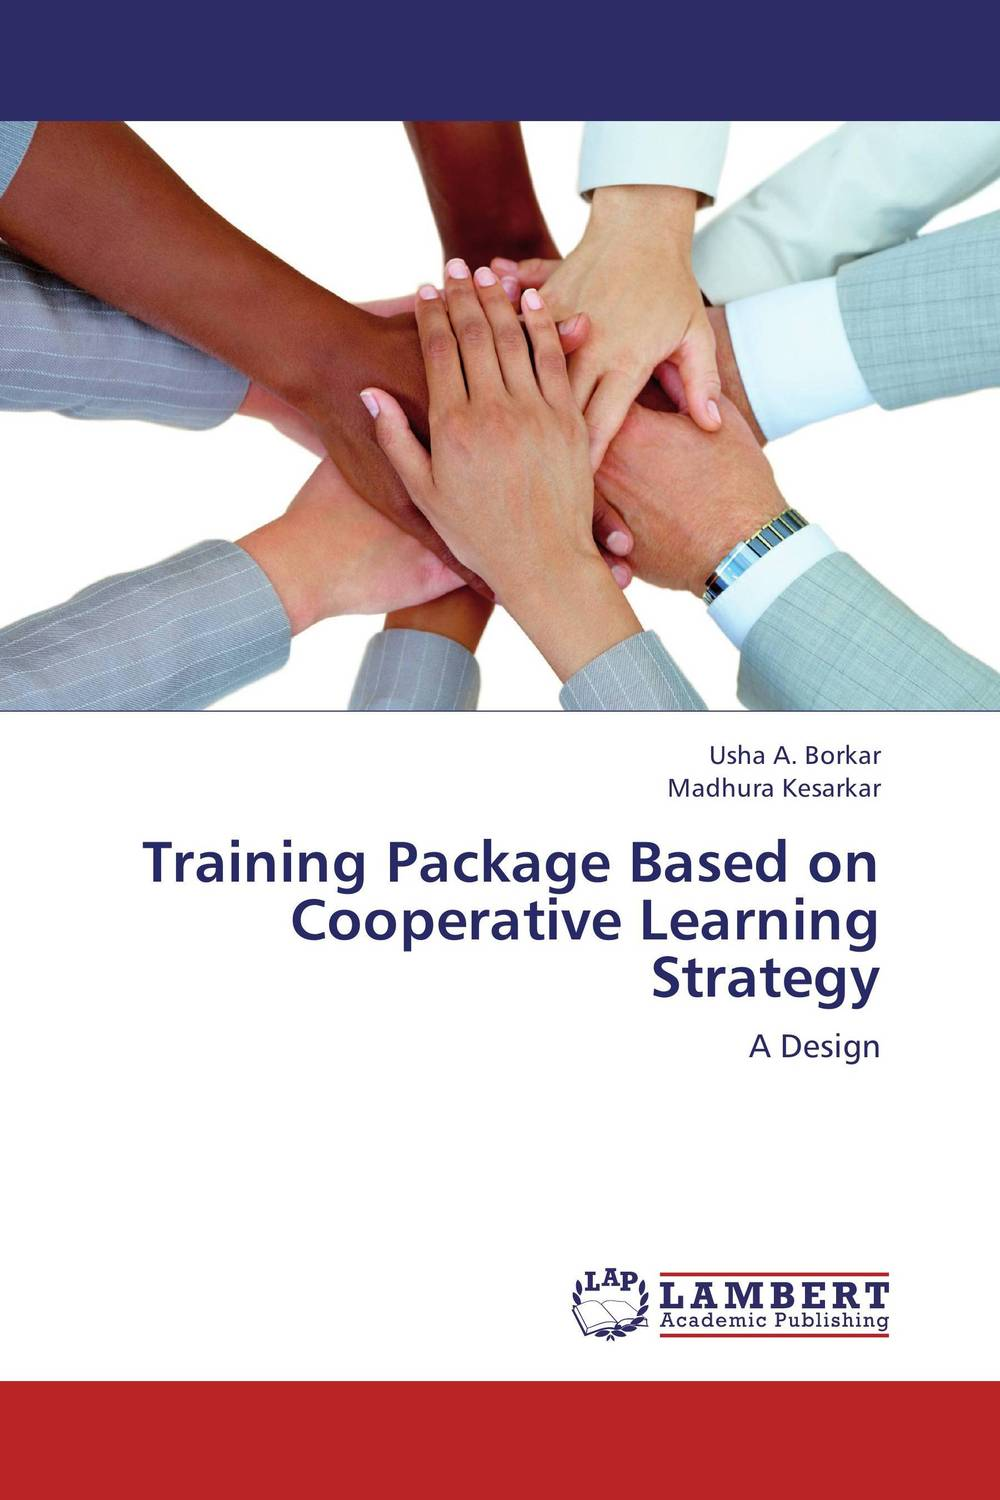 Training Package Based on Cooperative Learning Strategy seyed mohammad hassan hosseini cooperative learning methods 1 research and innovation